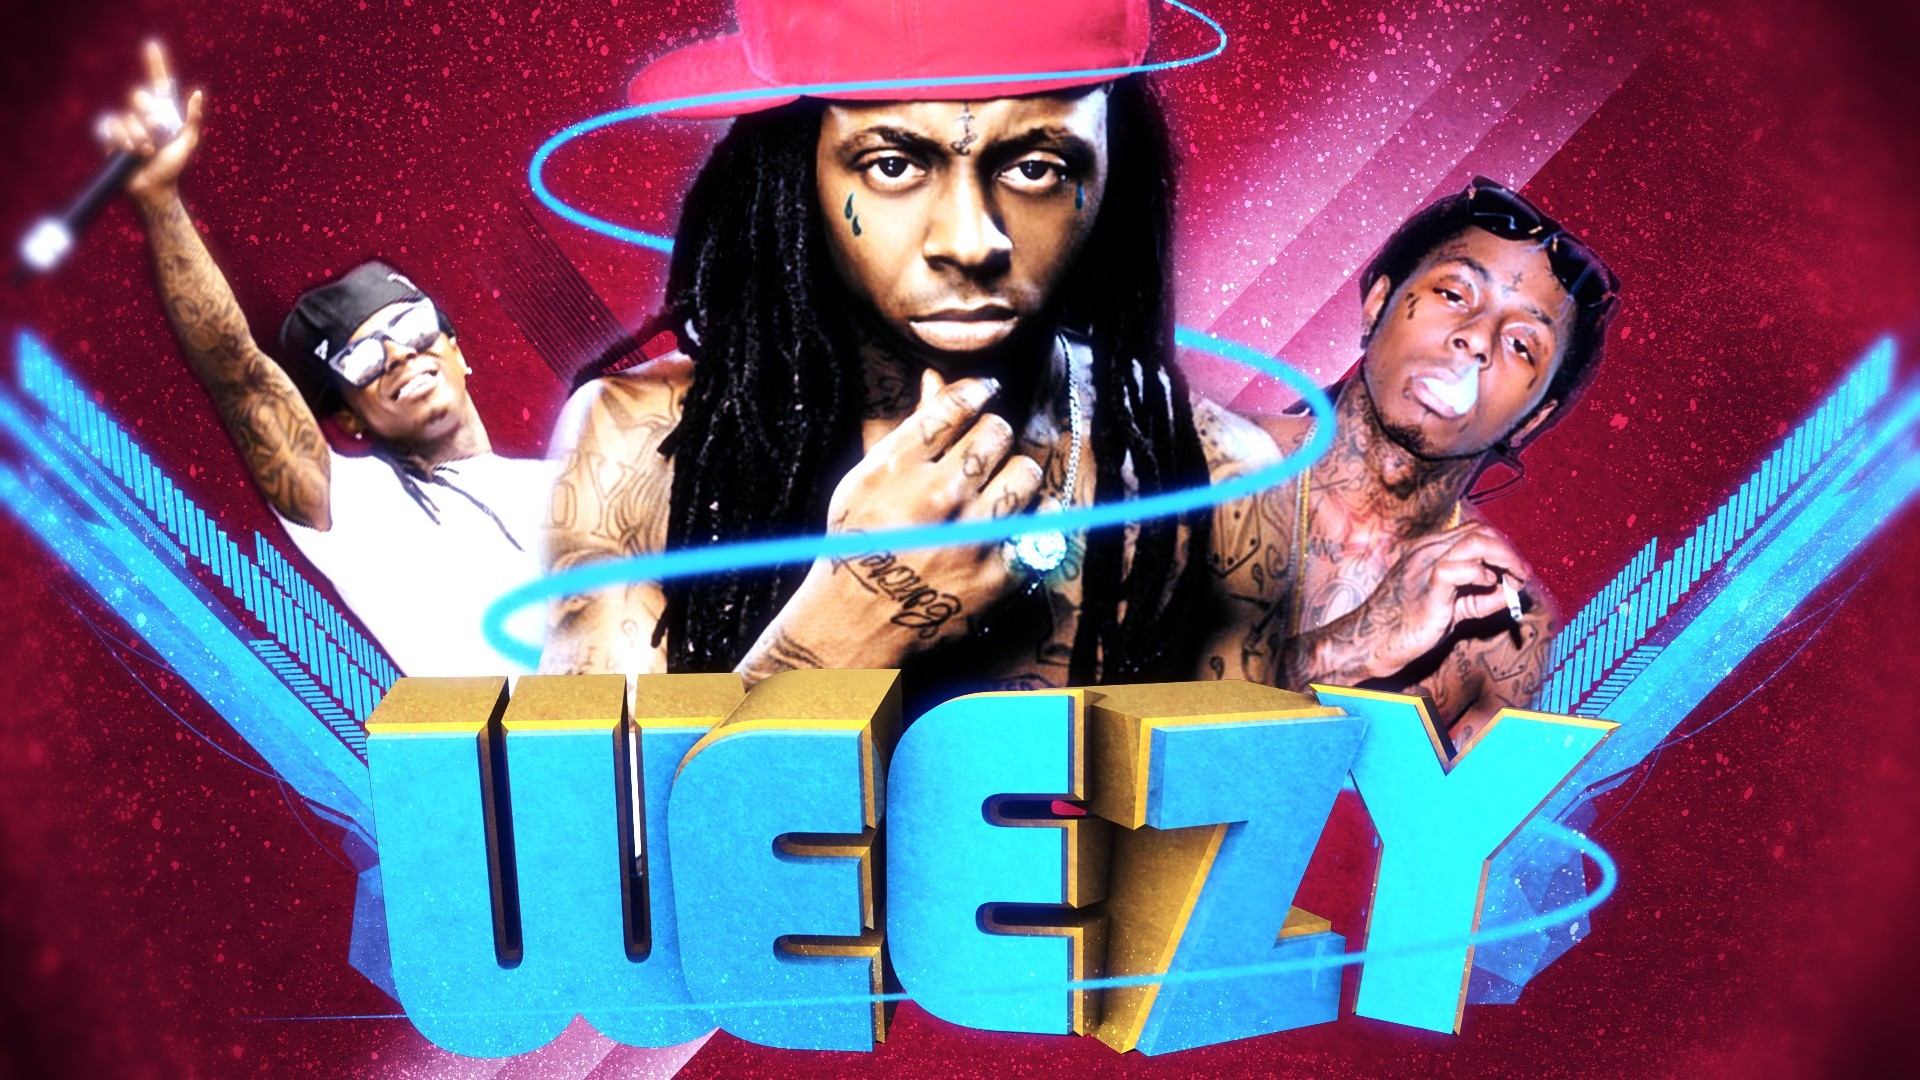 Download Lil Wayne HD 22 background for your phone iPhone android 1920x1080